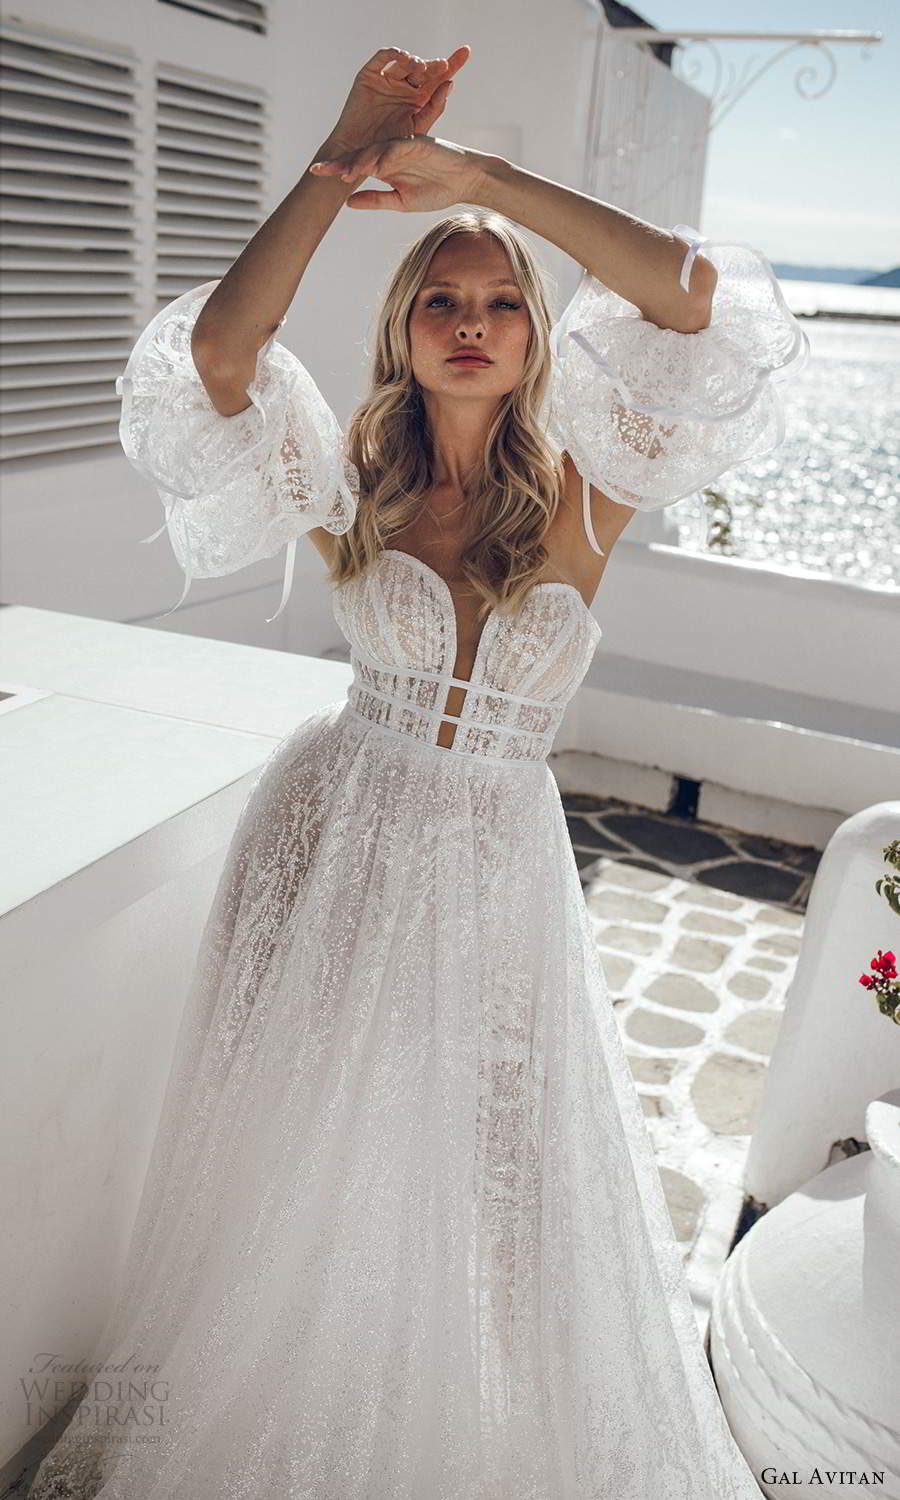 gal avitan 2021 bridal detached puff sleeves strapless sweetheart neckline fully embellished lace a line ball gown wedding dress chapel train (6) zv